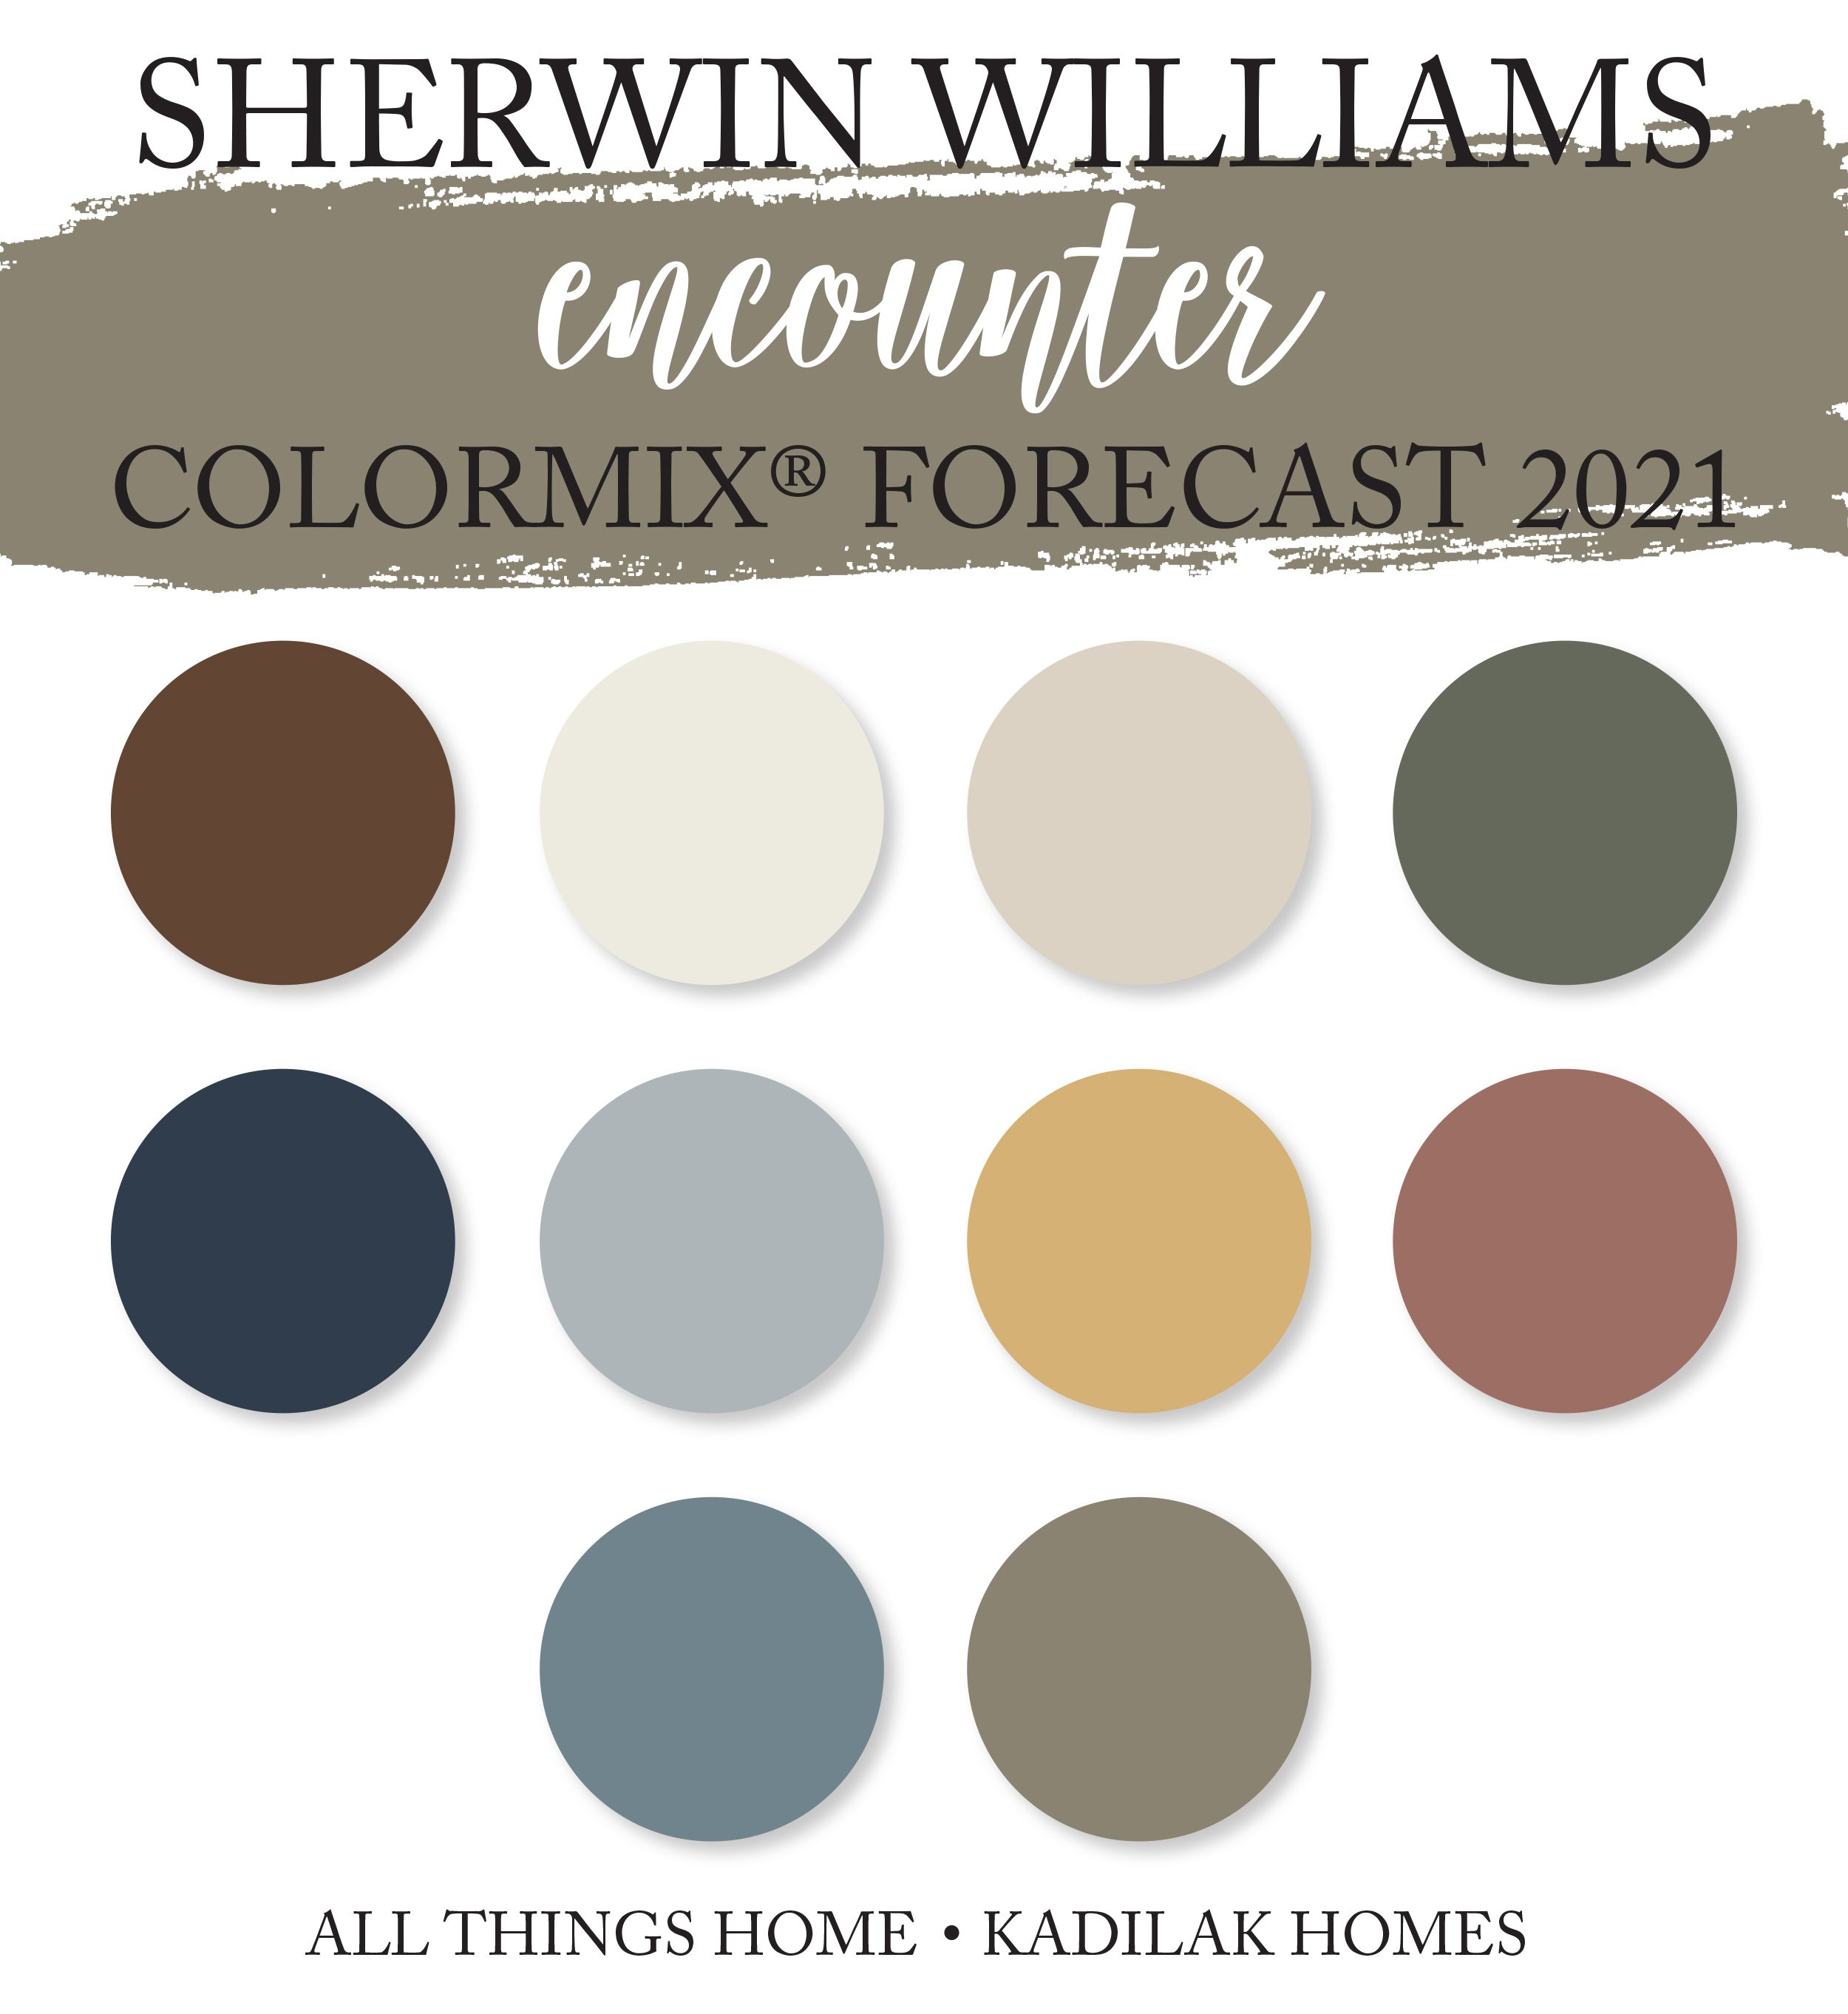 sherwin williams colormix forecast 2021 in 2020 blue on house colors for 2021 id=50511